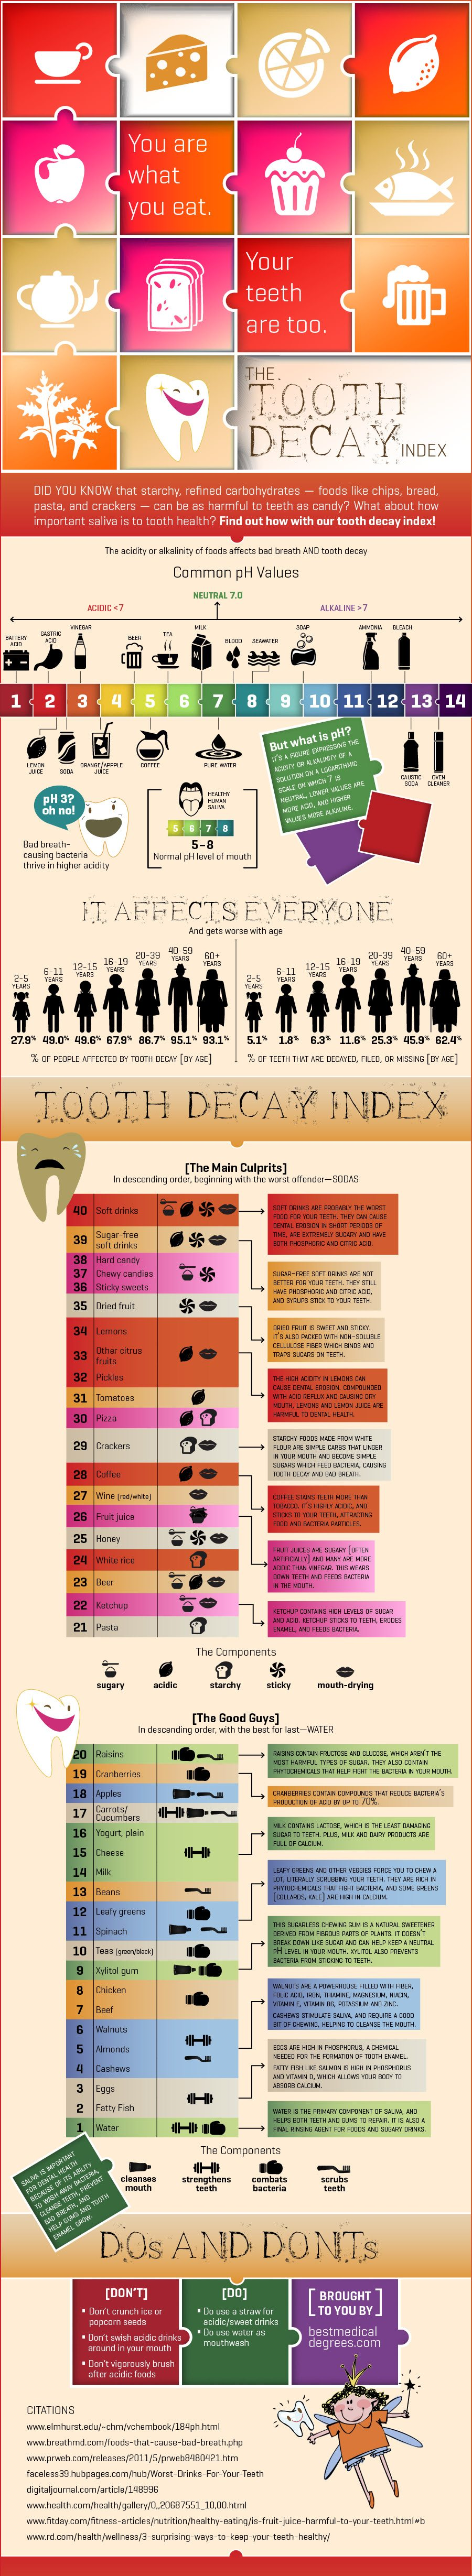 Tooth Decay Index